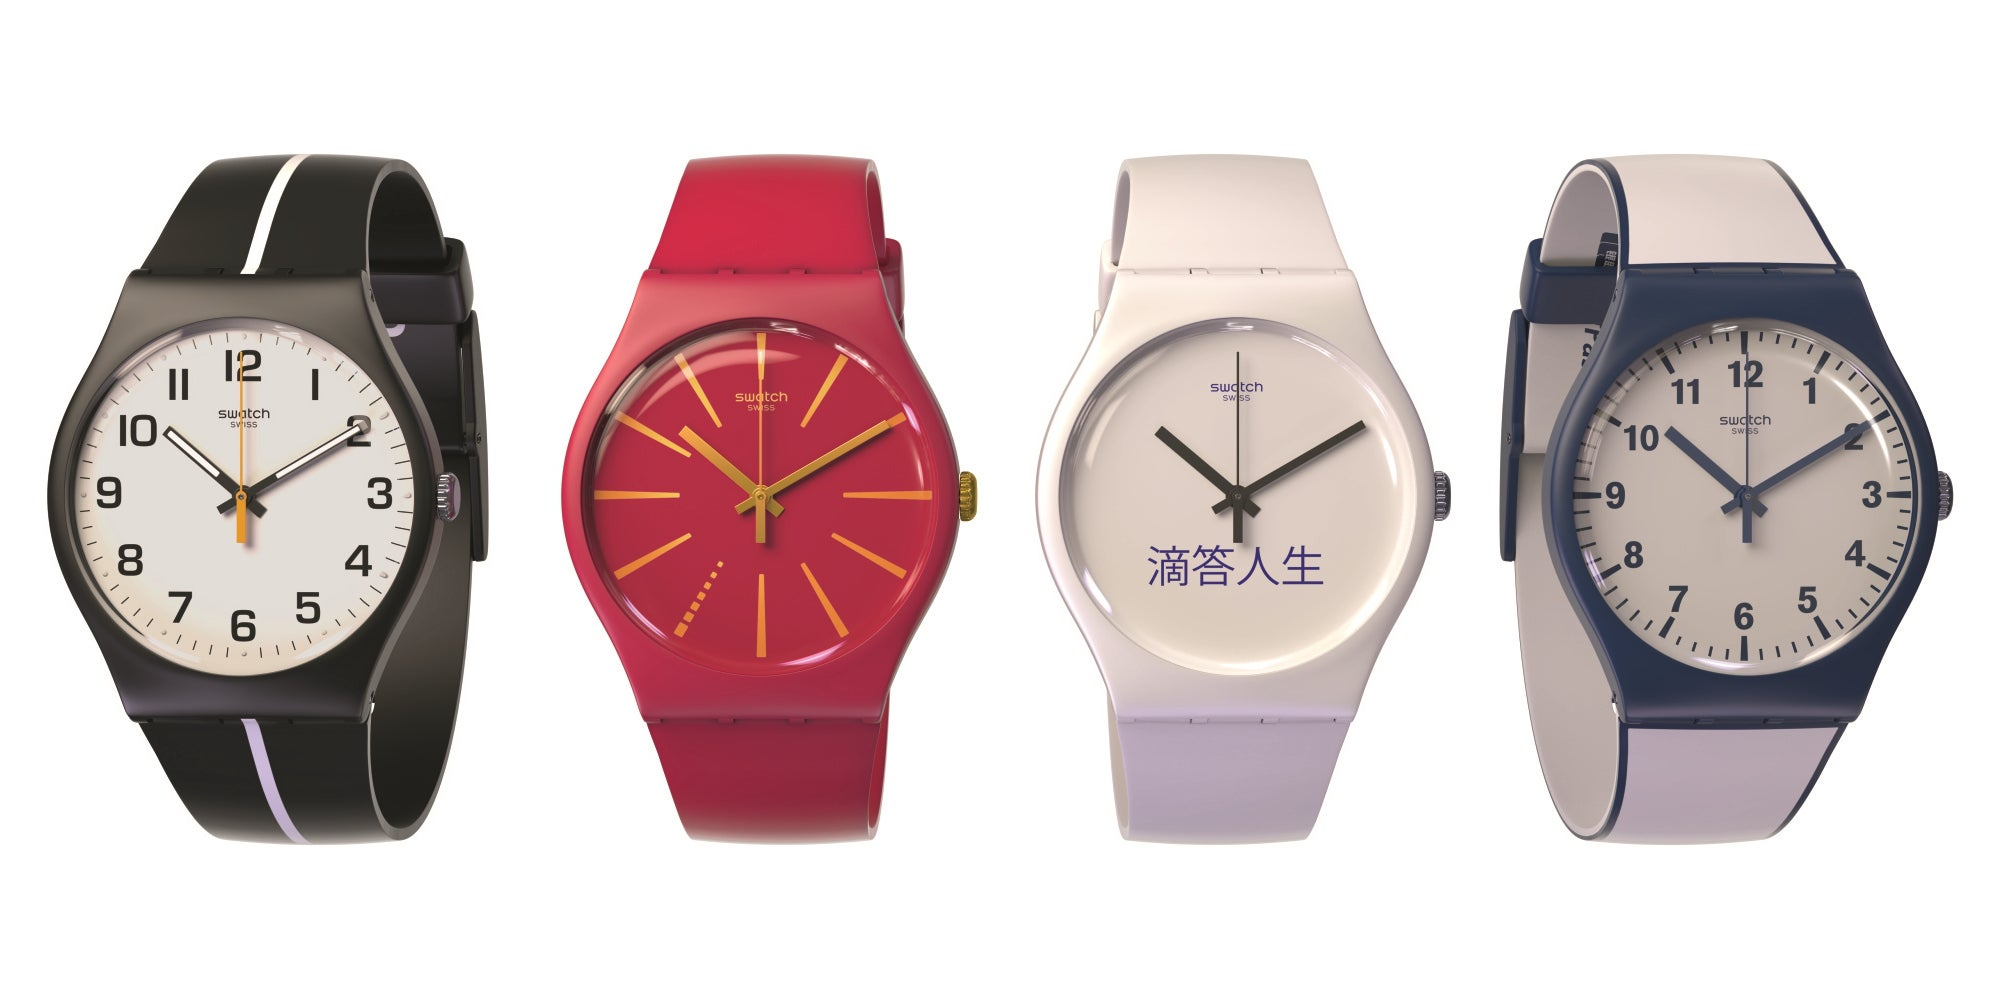 Swatch's New Analogue Watch Will Let You Make Contactless Payments